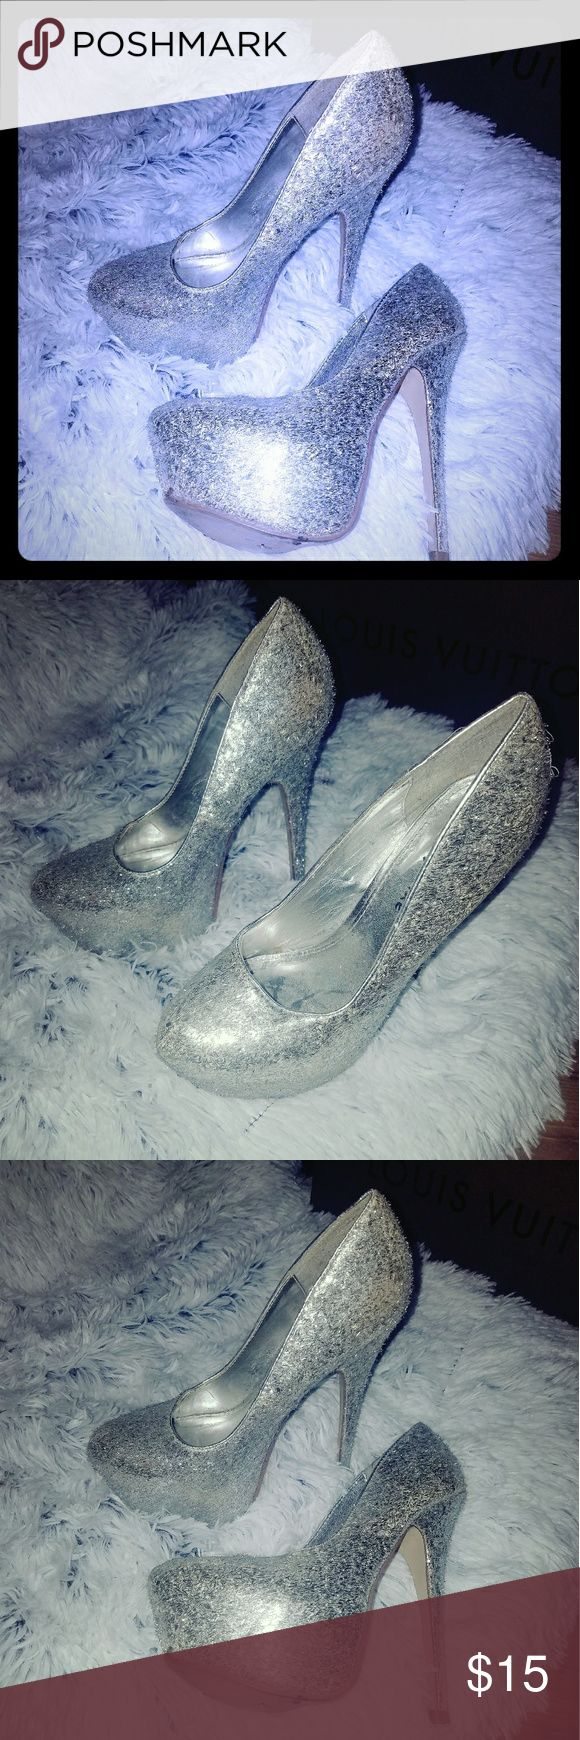 Silver heels Glam glam glam very high heels size 8 Styluxe Shoes Heels